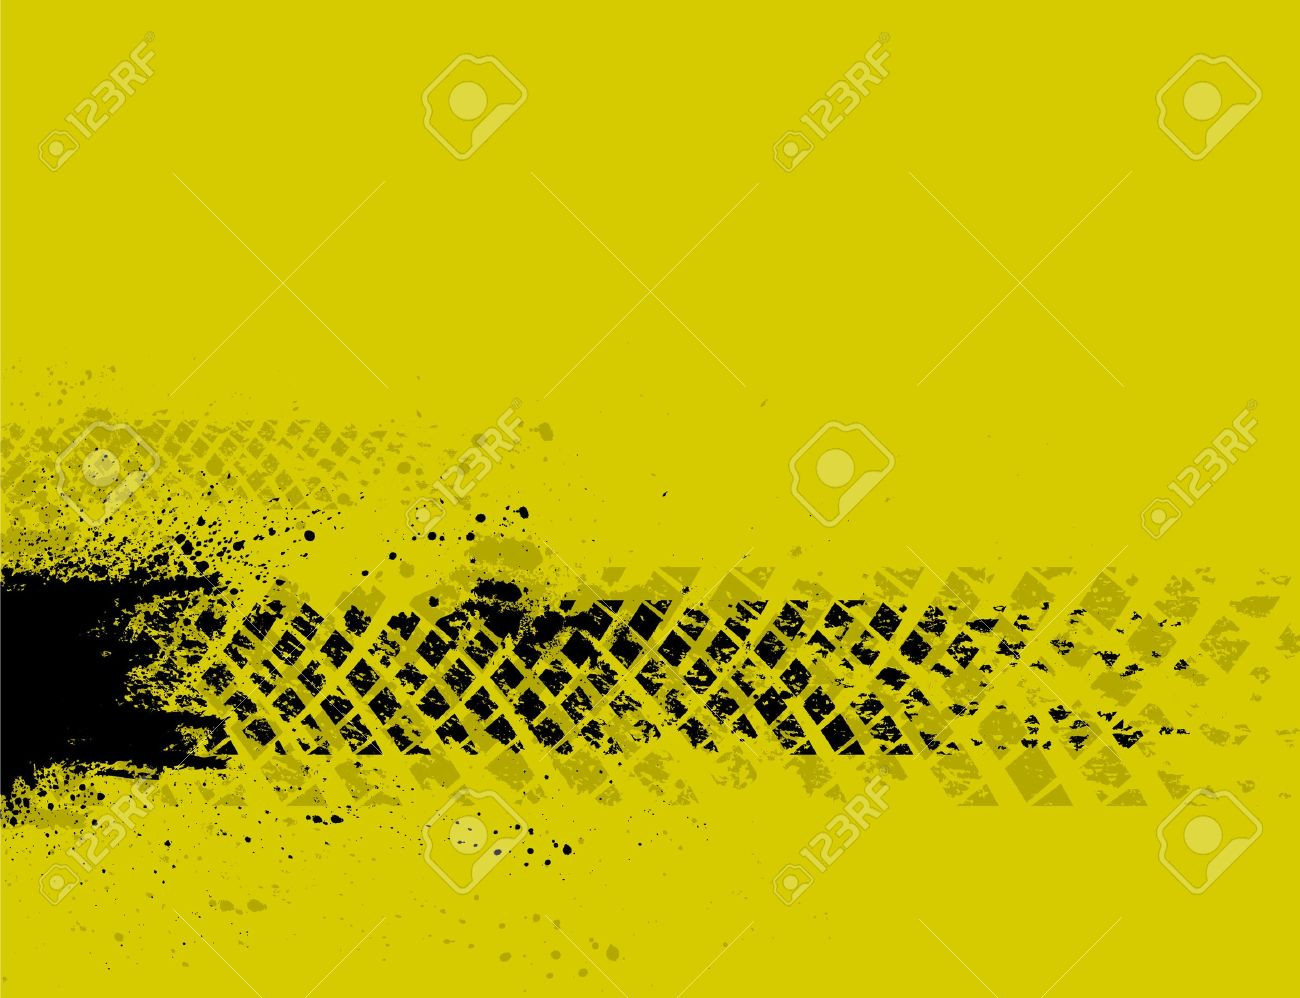 Yellow tire track background - 18655280